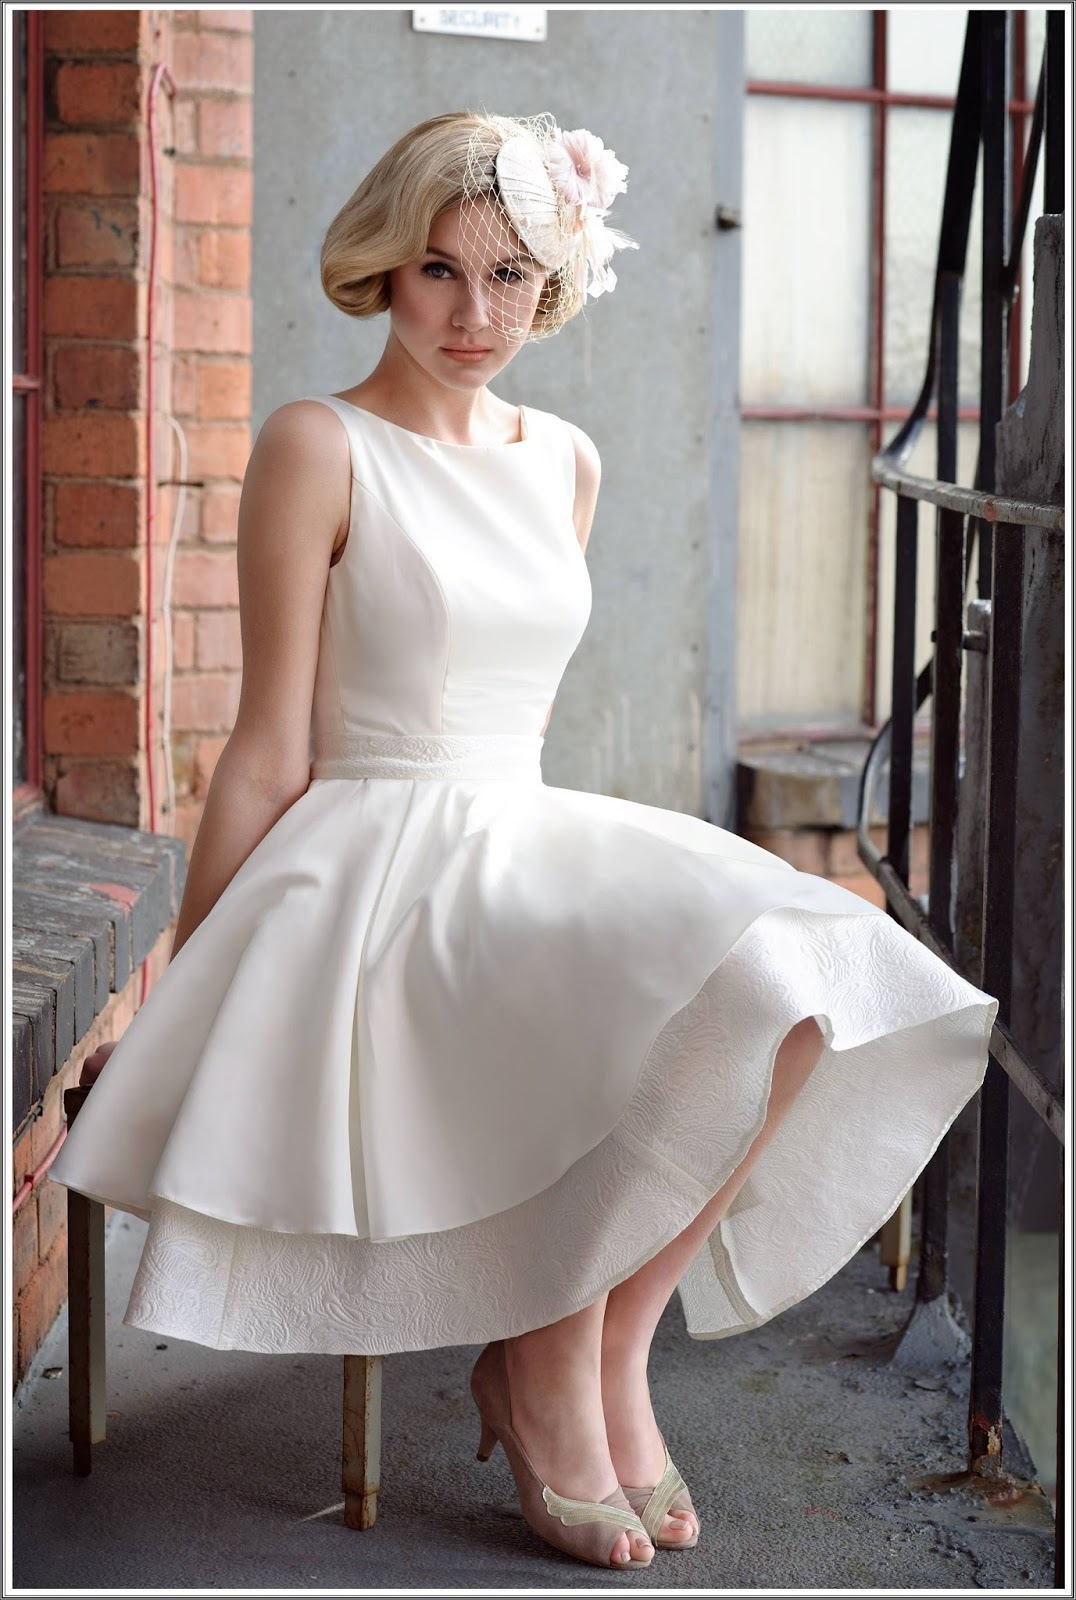 Short Wedding Dresses with Sleeves, Short Wedding Dresses 2015, Wedding Gowns for Older Brides, Wedding Dresses for Second Marriages Over 50, Bridal Gowns for Older Brides Over 50, Bridal Dresses for Women Over 50, Wedding Dresses for Older Women 2nd Marriage, Plus Size Wedding Dresses for Older Brides